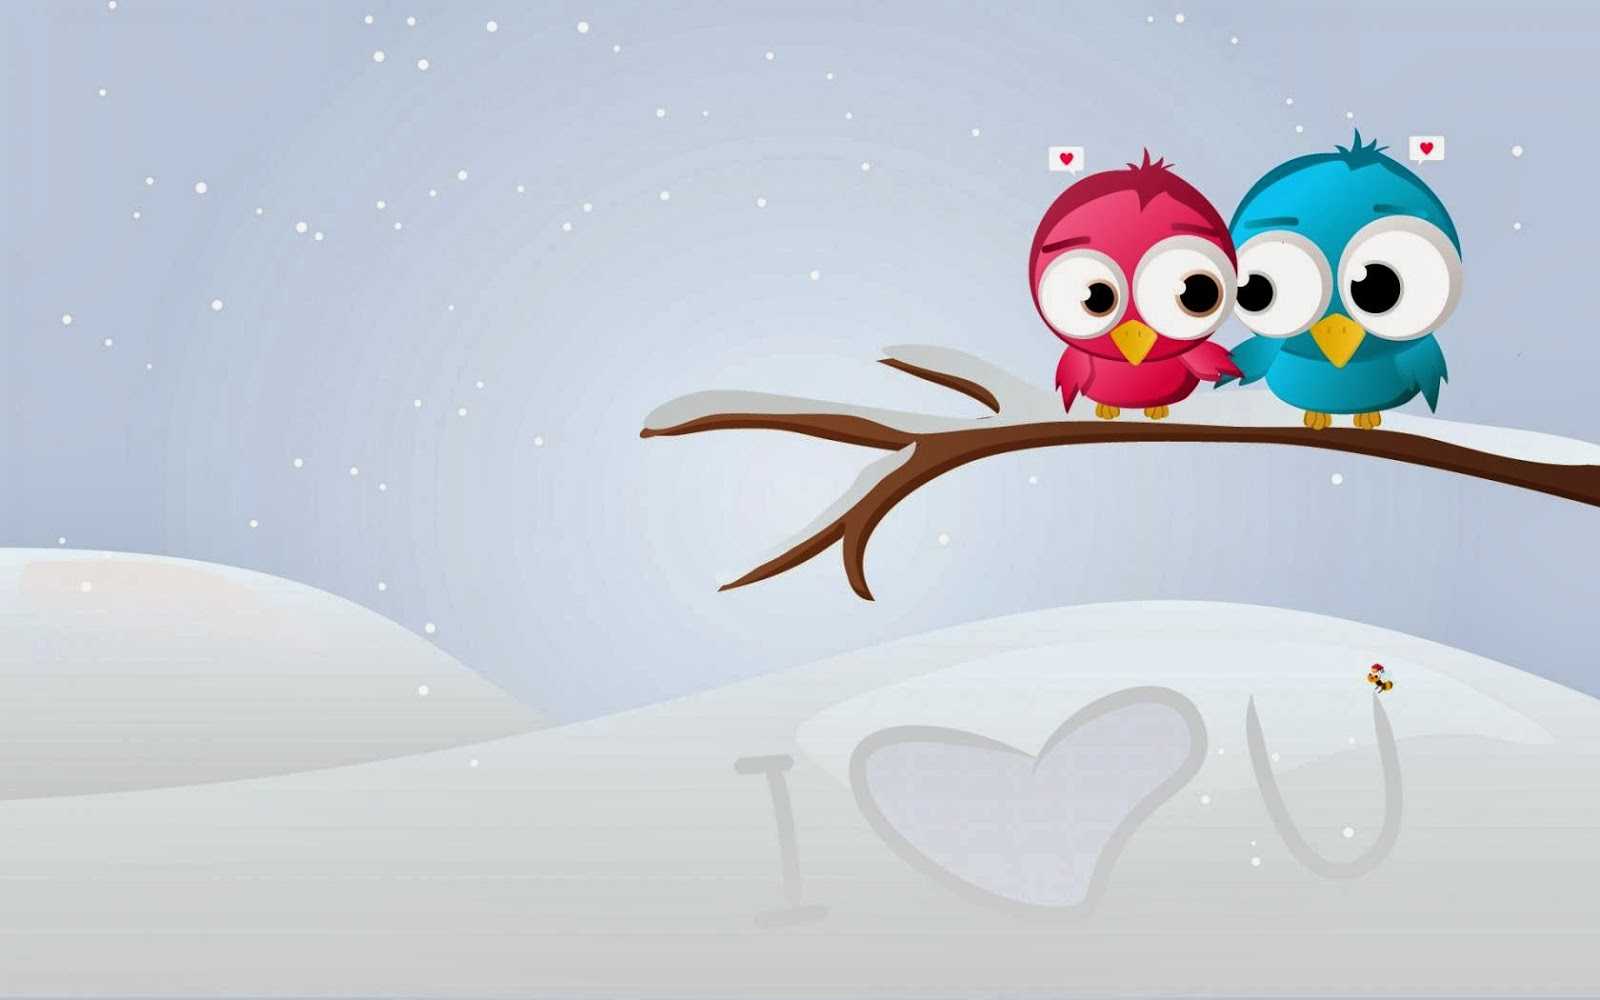 Sad Love Wallpaper cartoon : cute Little Love couple Pictures HD Free Download PIXHOME